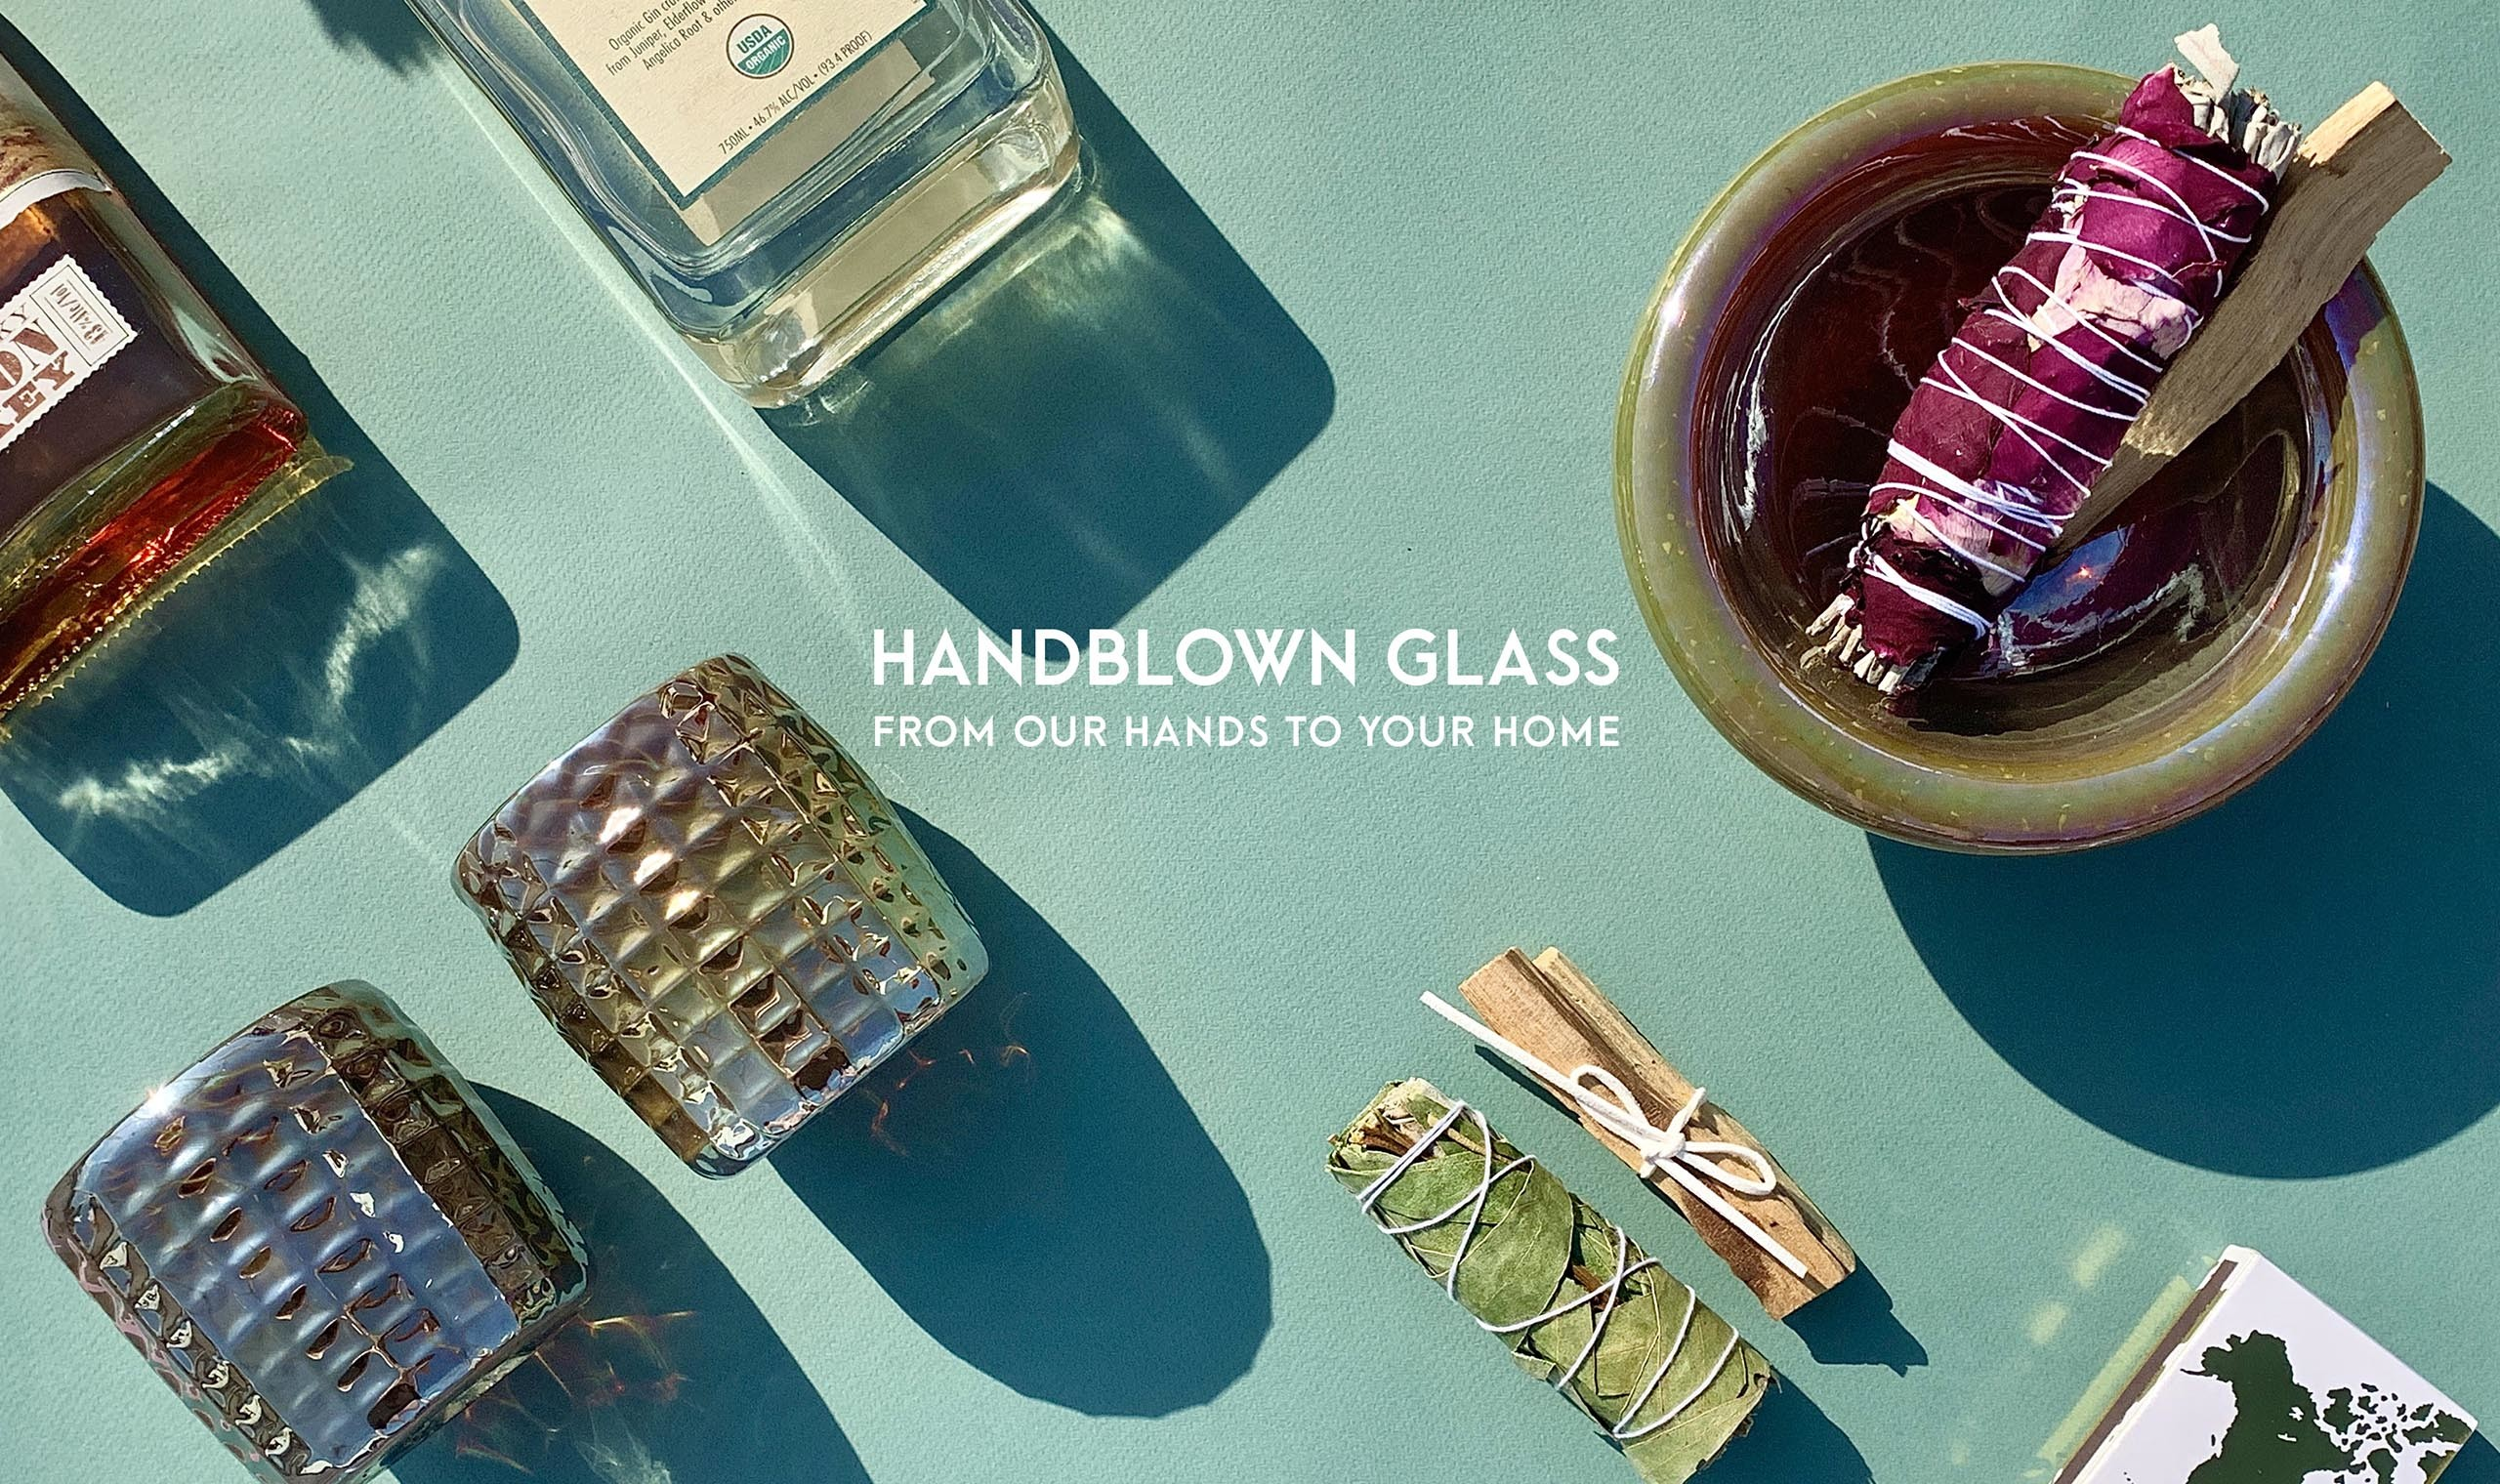 Handblown glass - from our hands to your home.